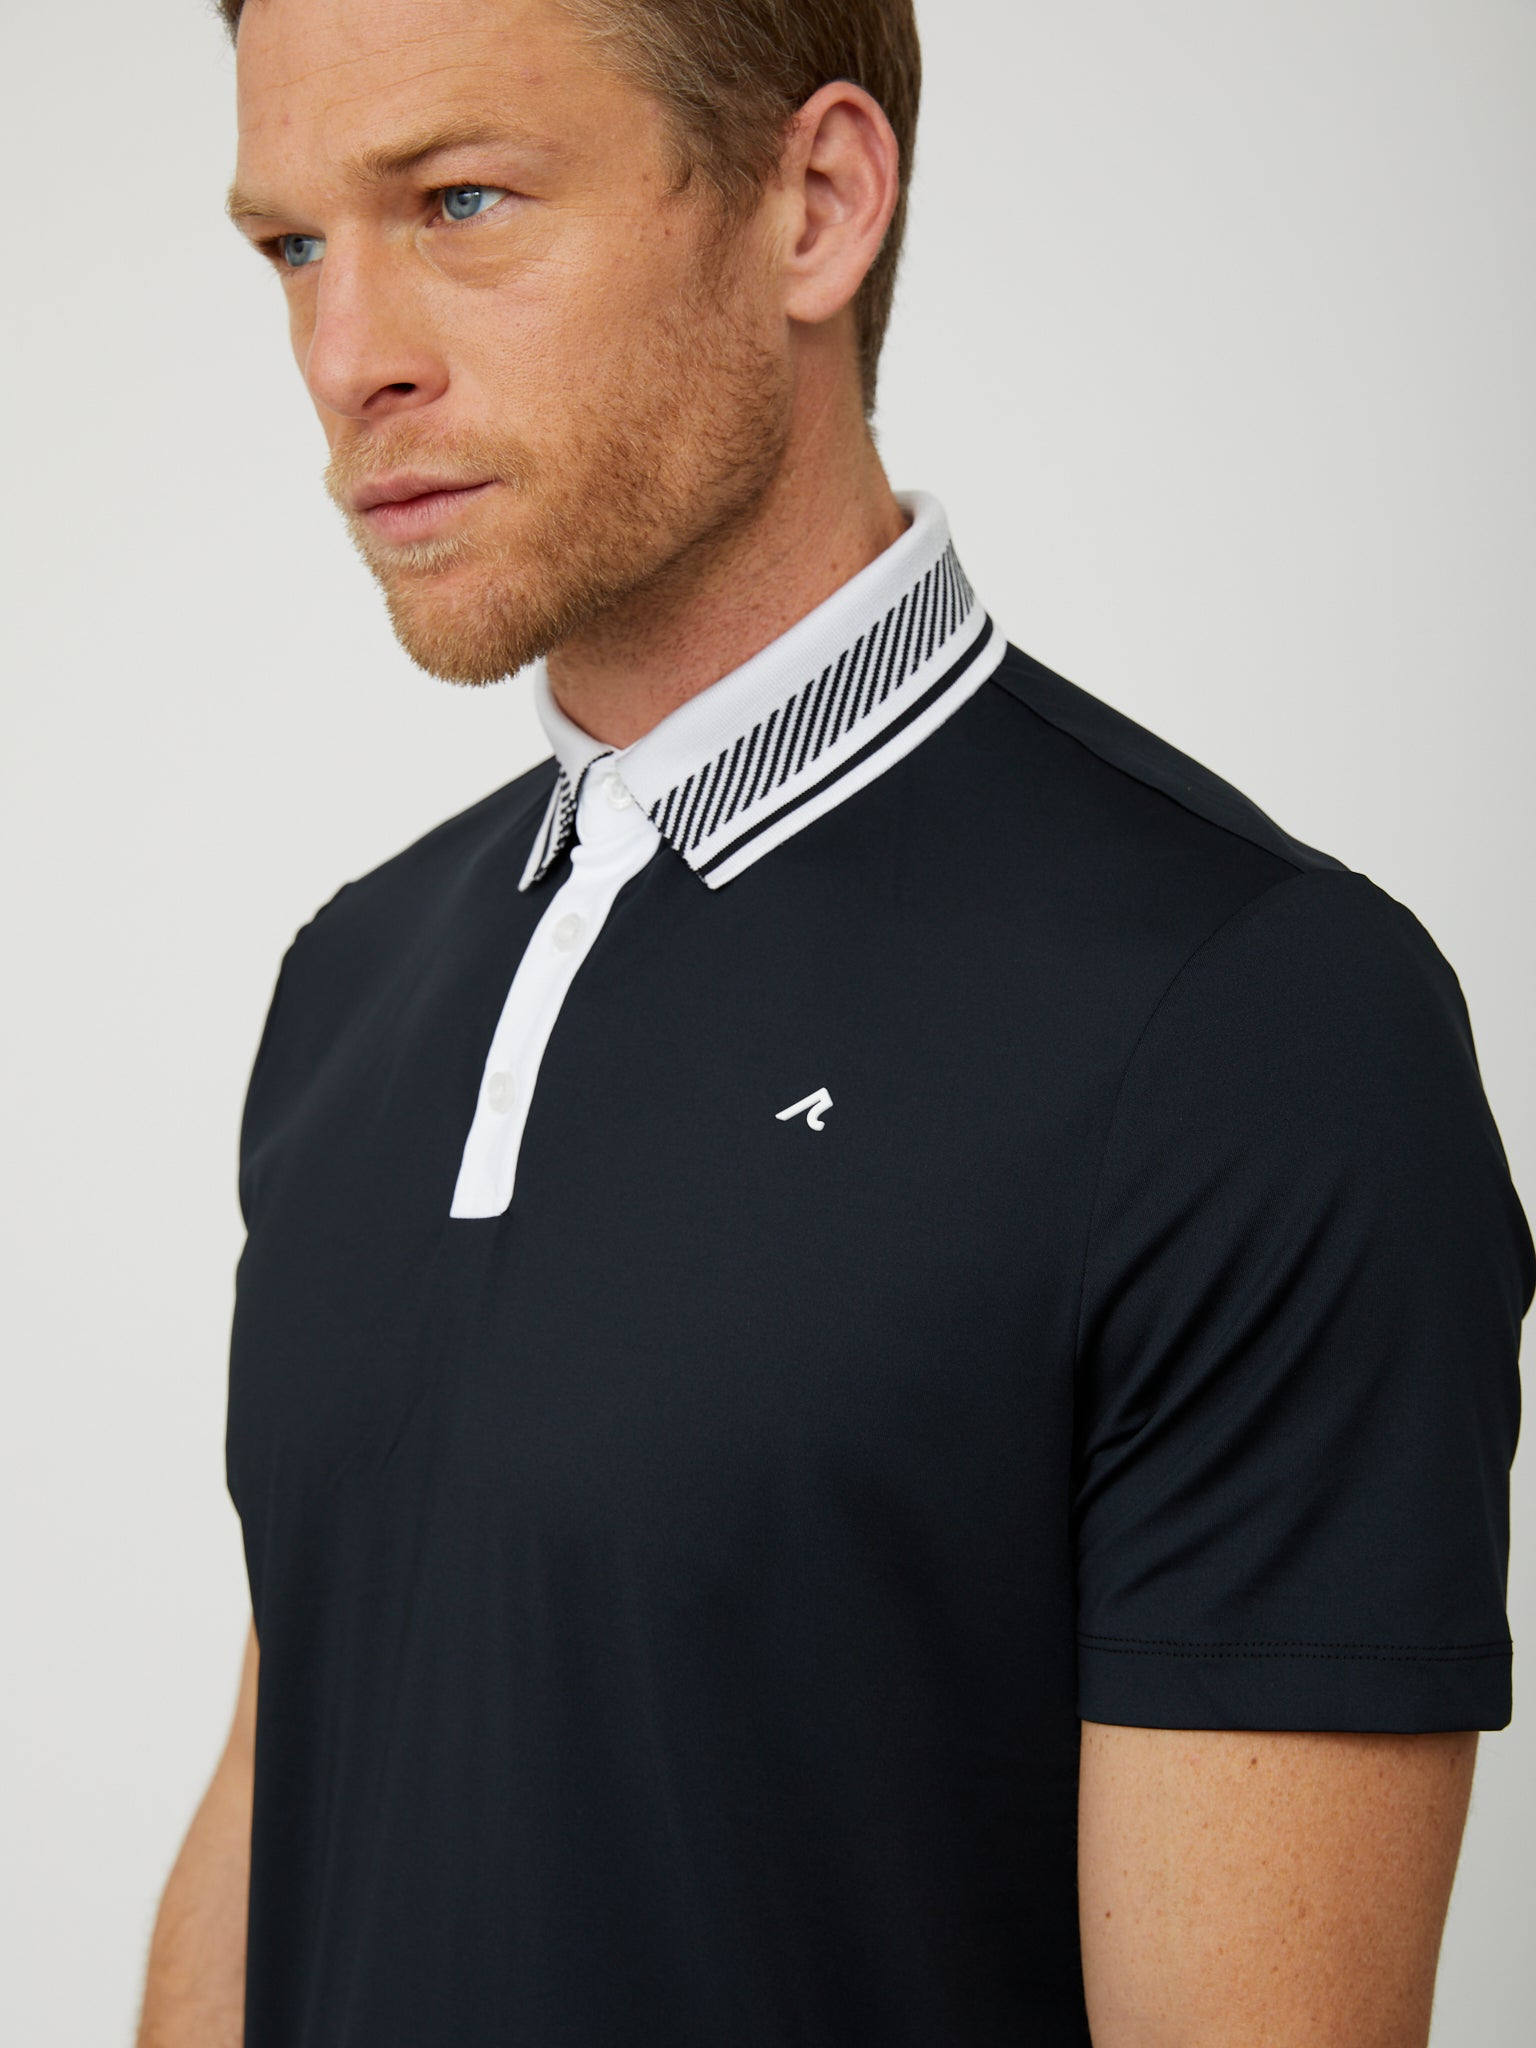 Truet Polo in Black